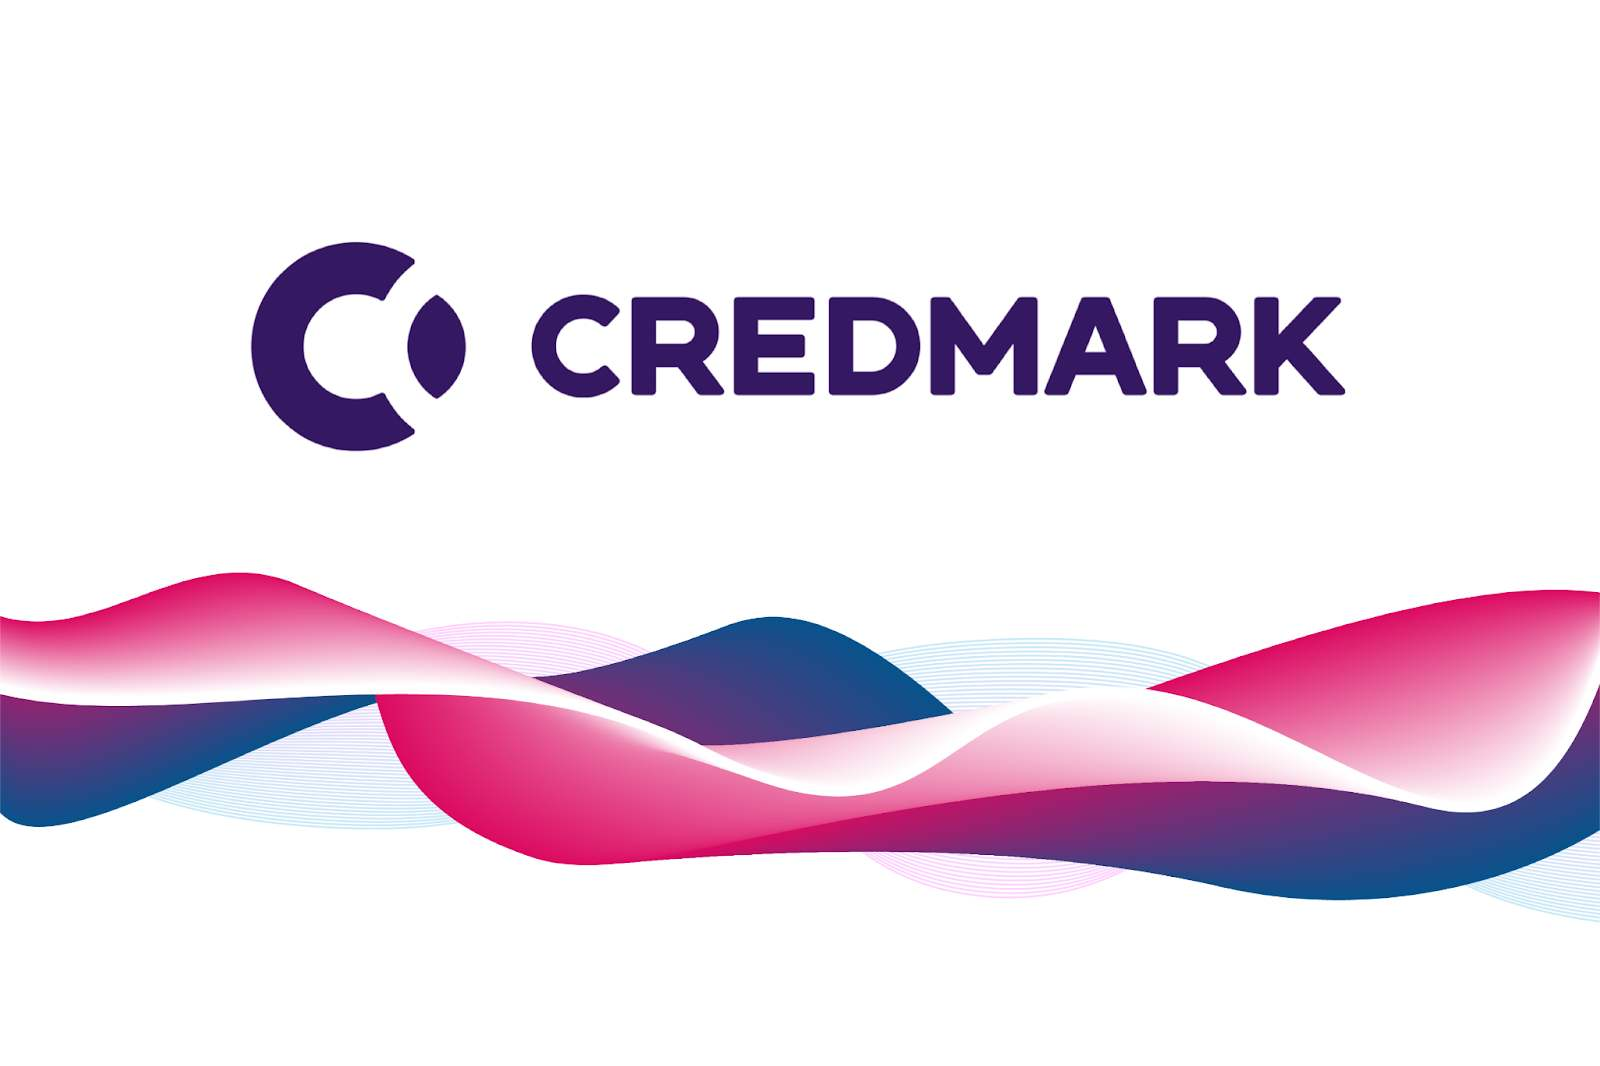 Credmark's Uniswap Tool Introduces DeFi to Risk Modeling